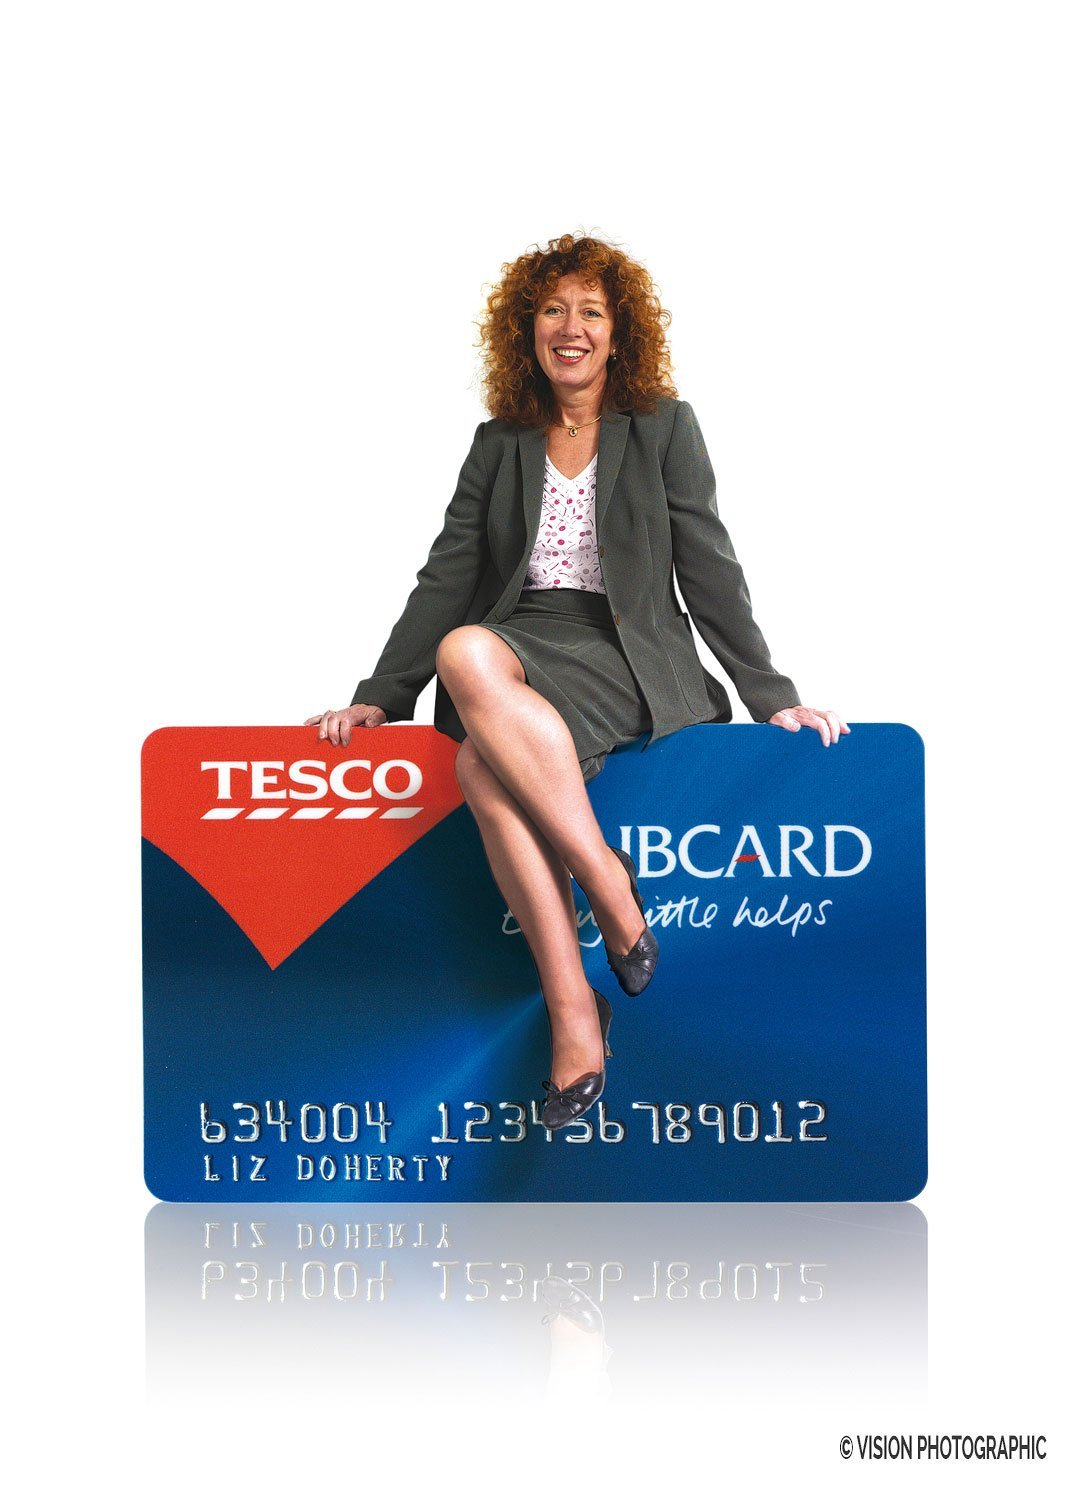 Advertising photography for Tesco